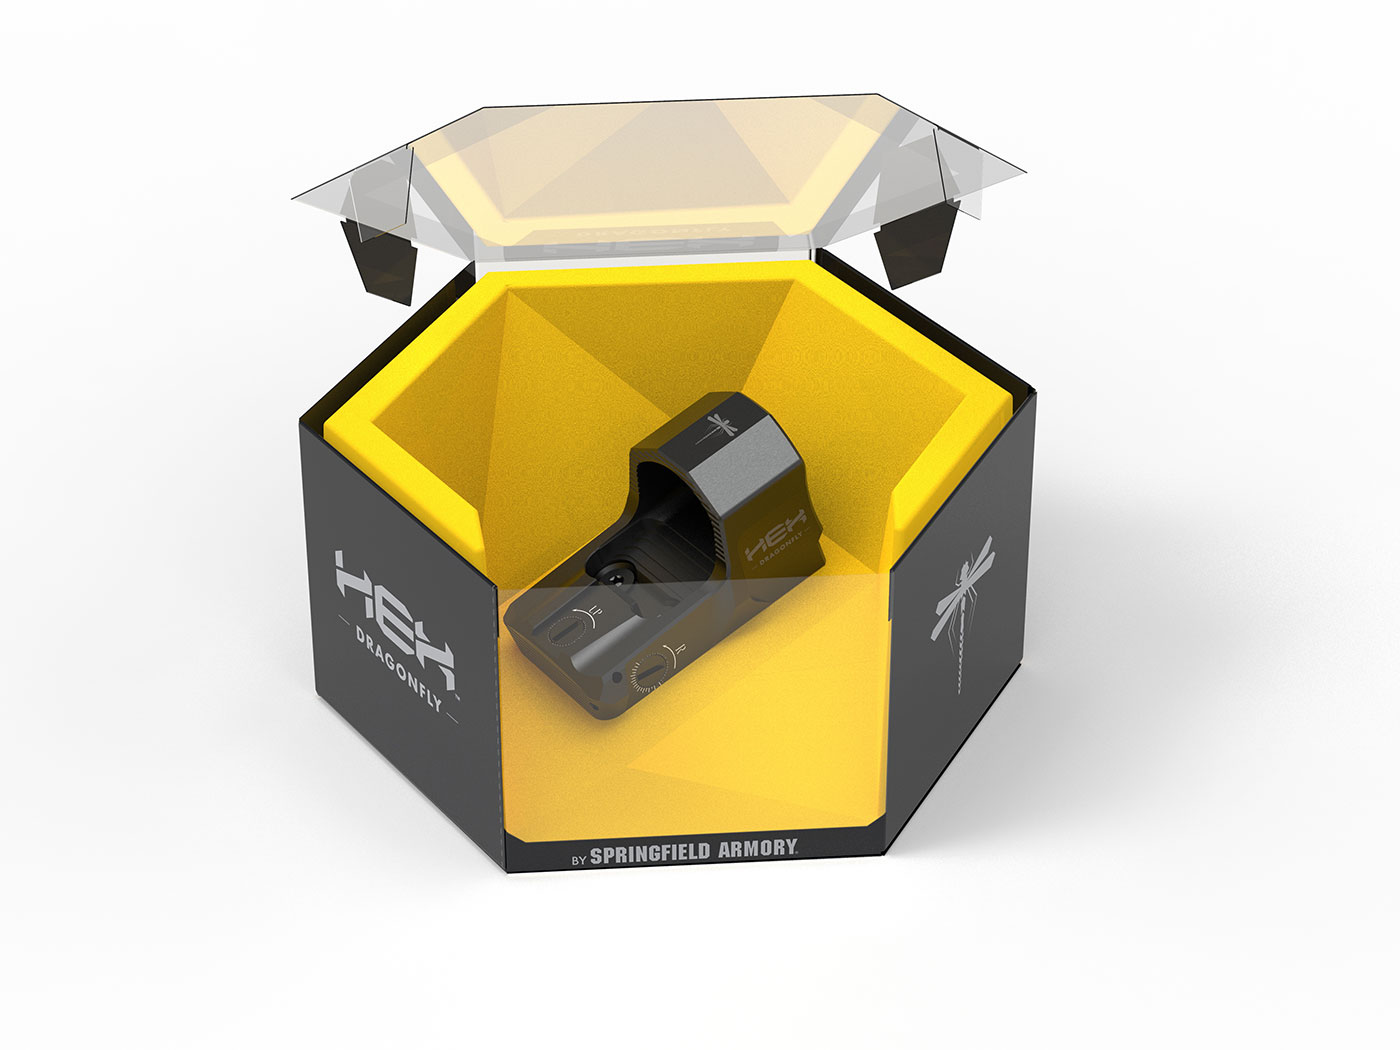 HEX Dragonfly in packaging with top of box open